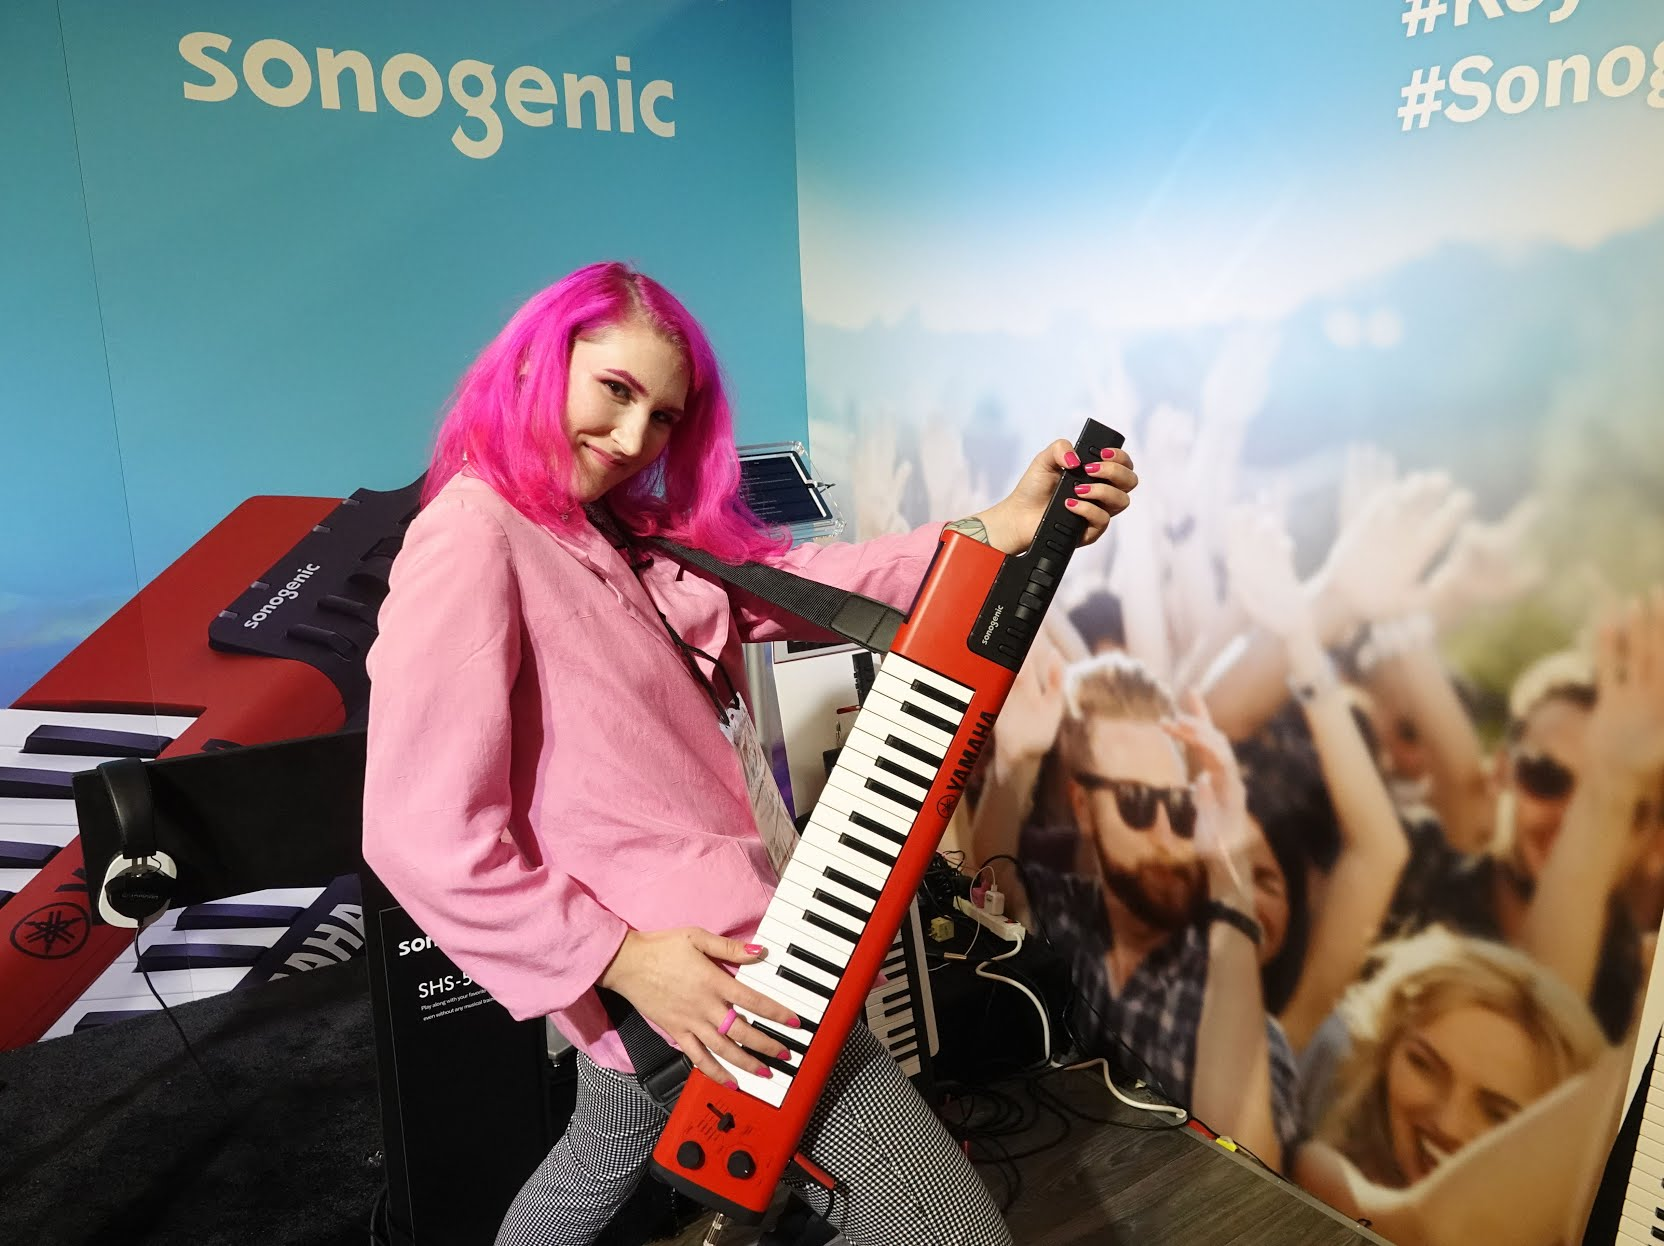 """The singer/songwriterPLASMICdemonstrates the Yamaha Sonogenic """"Keytar"""", a $299 keyboartd for young people who don't know how to play. Software enables users to play along with songs in key; they can also play normal piano as well."""